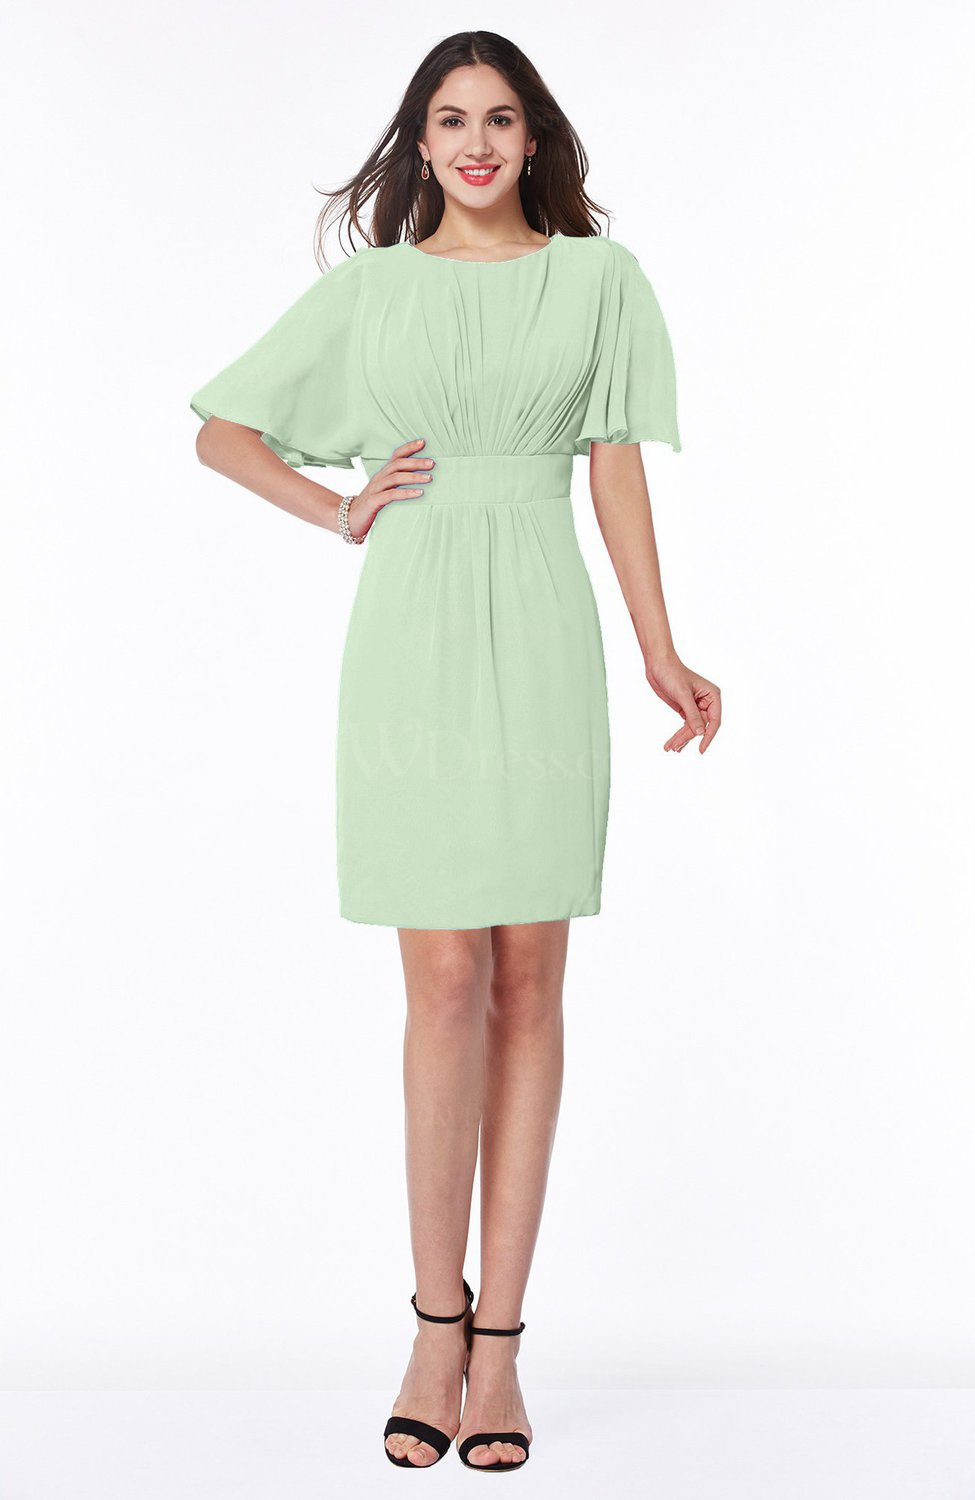 Modest Sheath Dresses